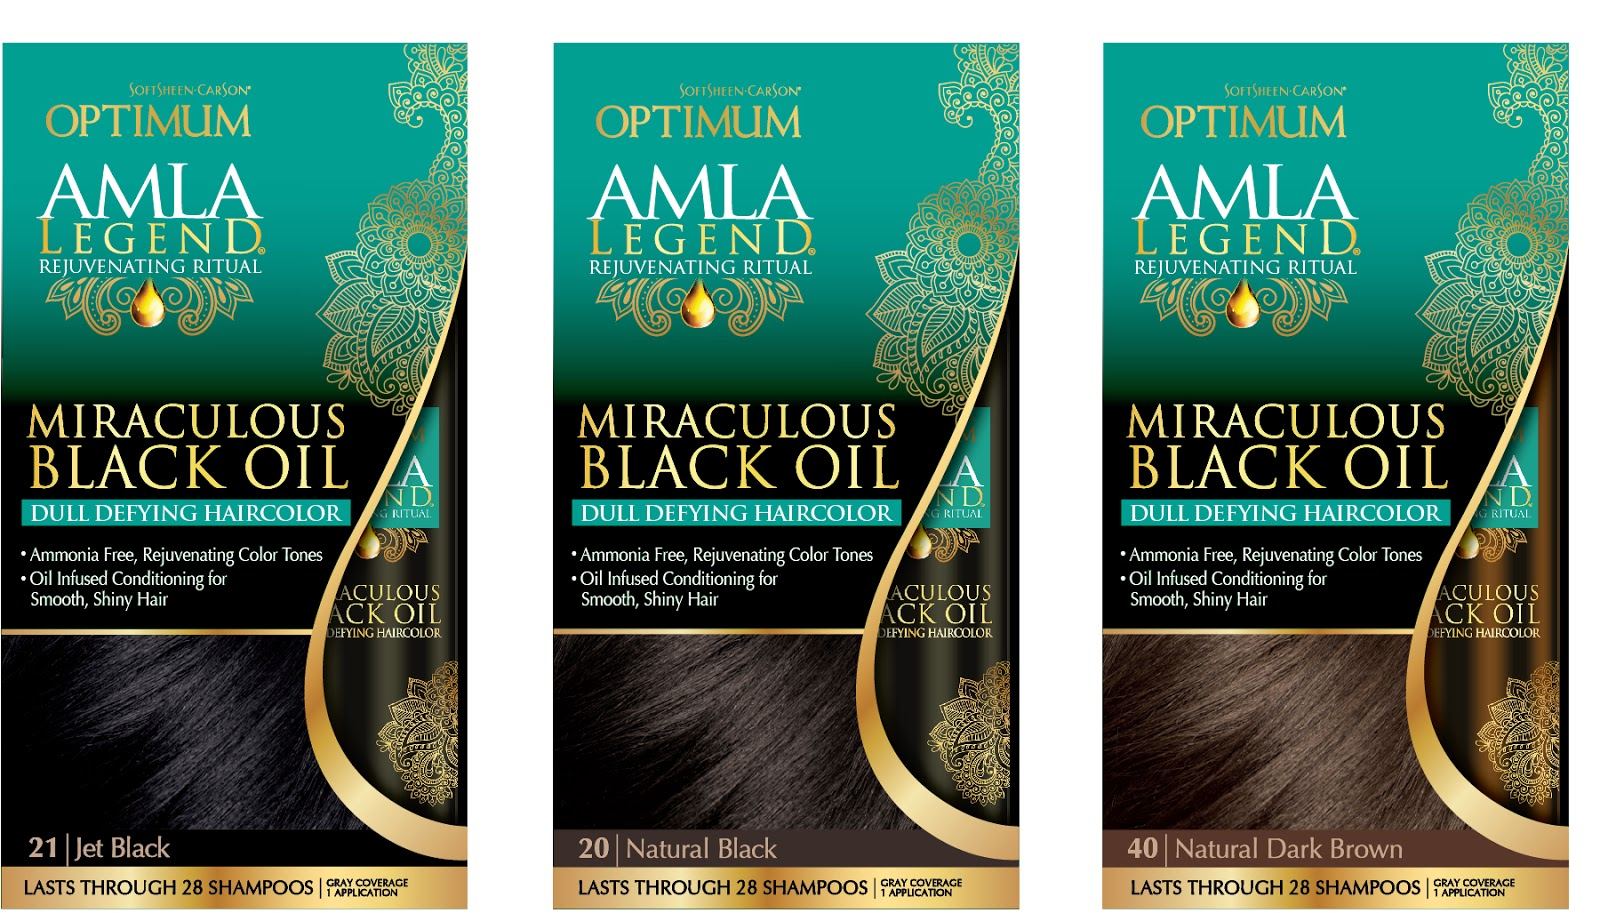 Optimum Amla Legend Miraculous Black Oil Hair Color